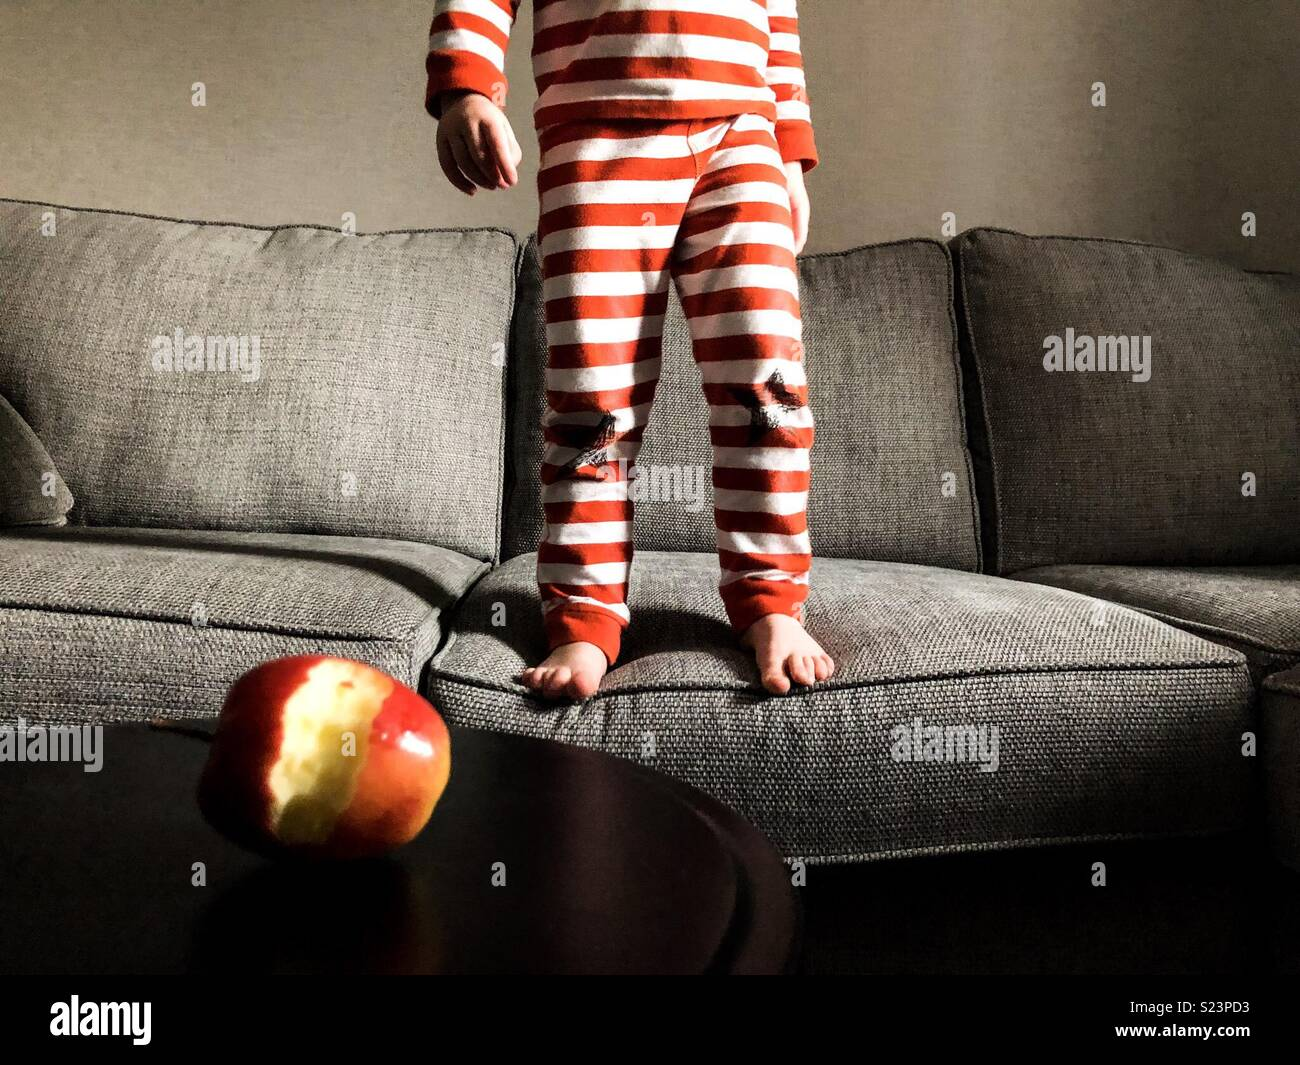 Child with striped pyjamas on sofa with half eaten apple - Stock Image